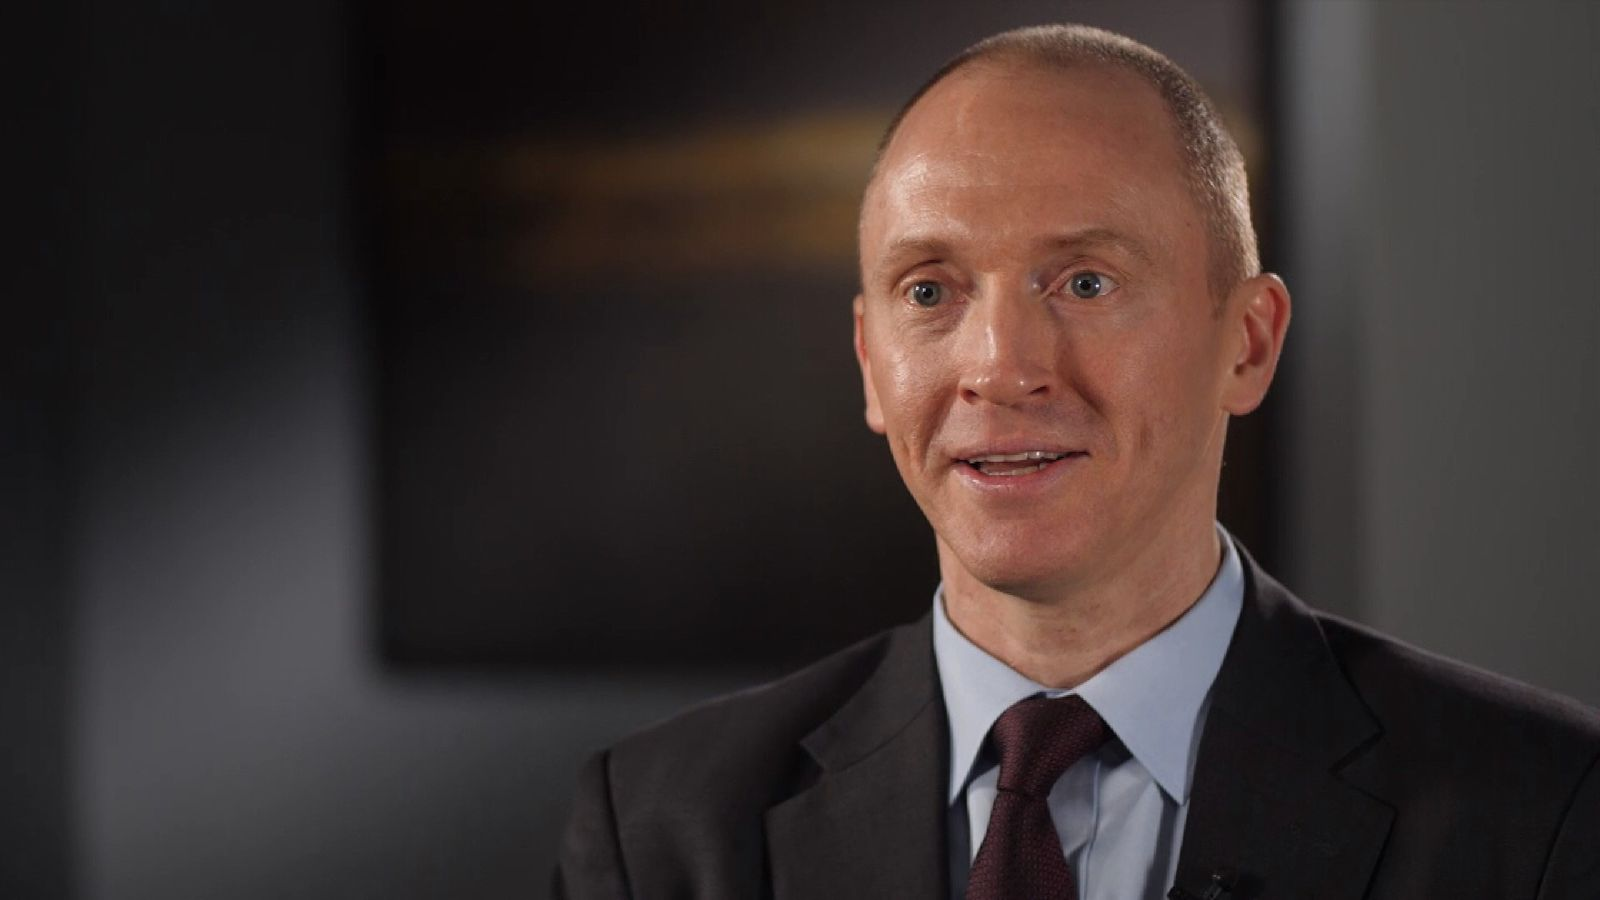 Carter Page former Trump adviser talking in interview.